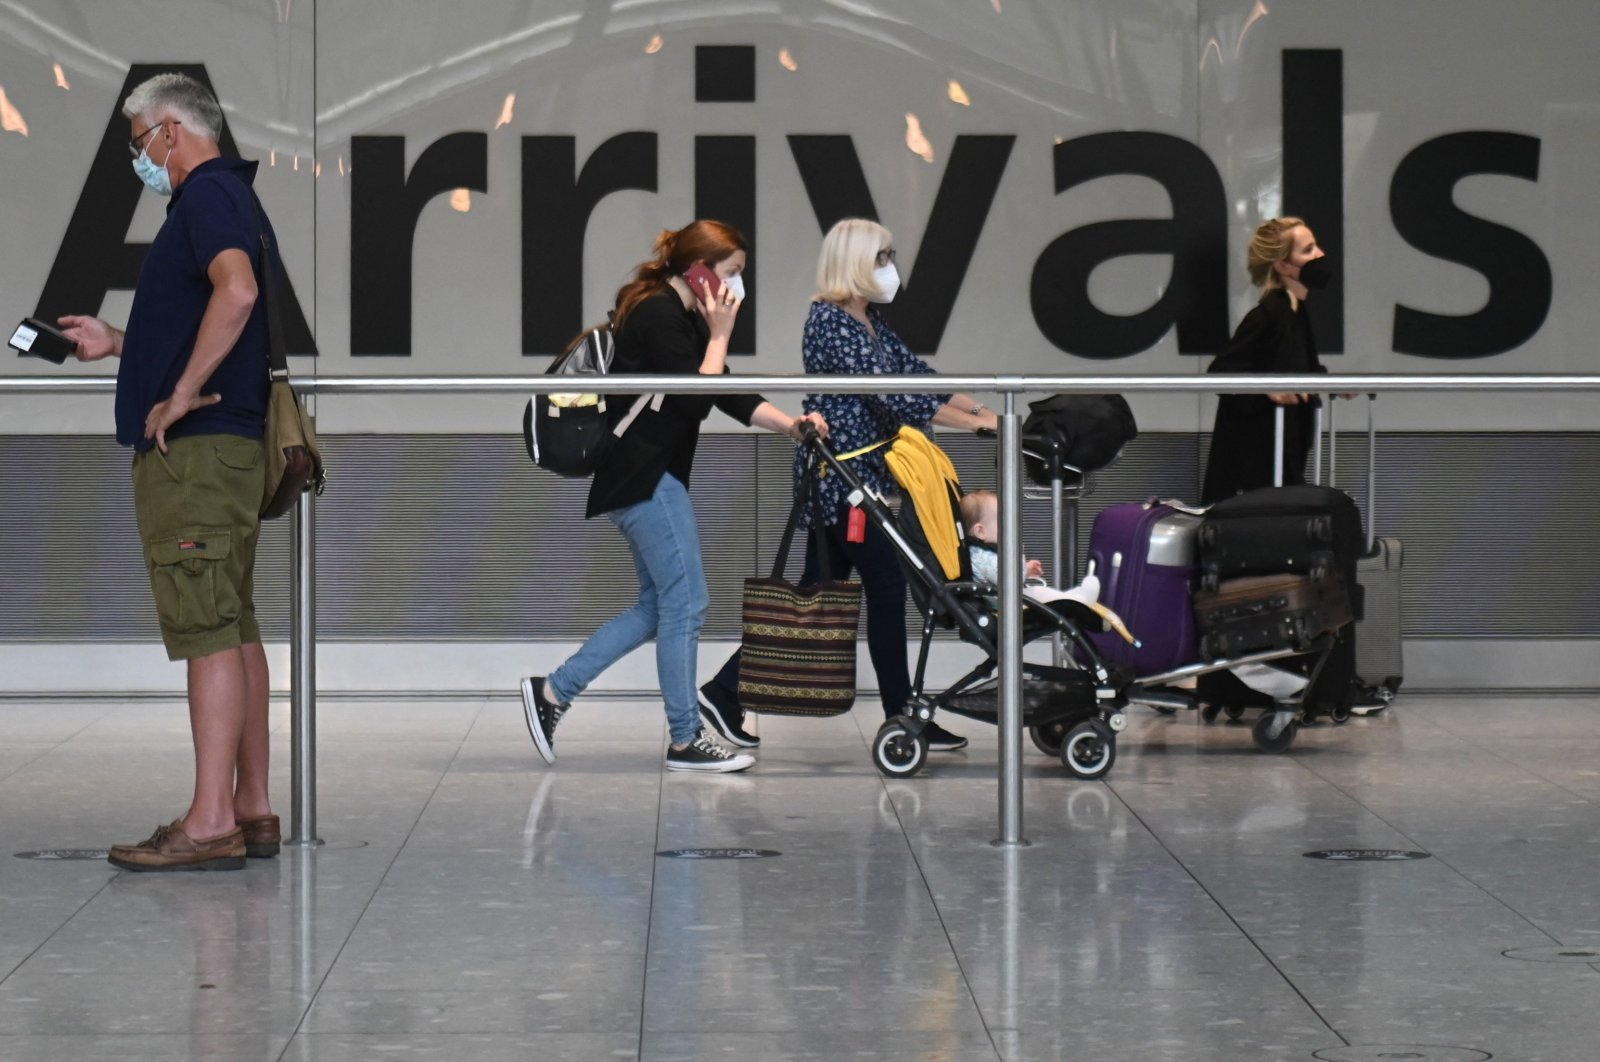 Passengers push their luggage on arrival in Terminal 5 at Heathrow airport, London, June 3, 2021. (AFP Photo)